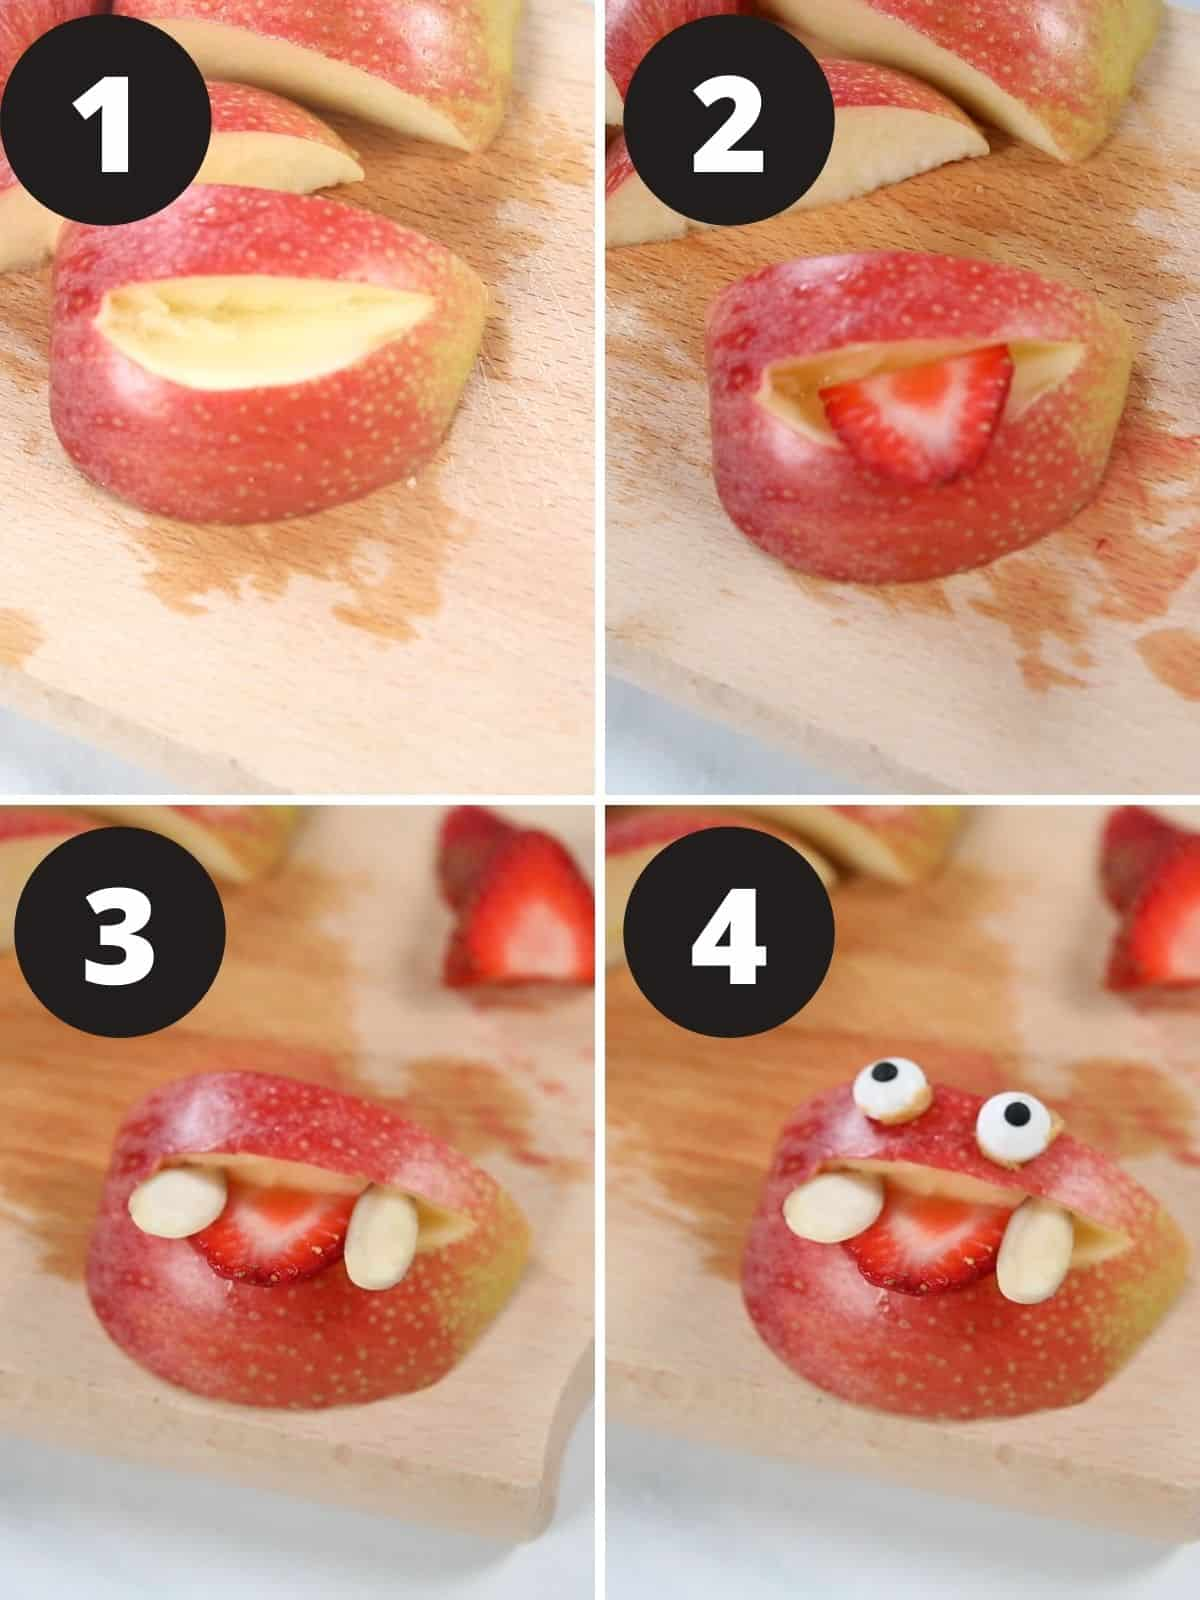 Step by step pictures showing making apple monsters.